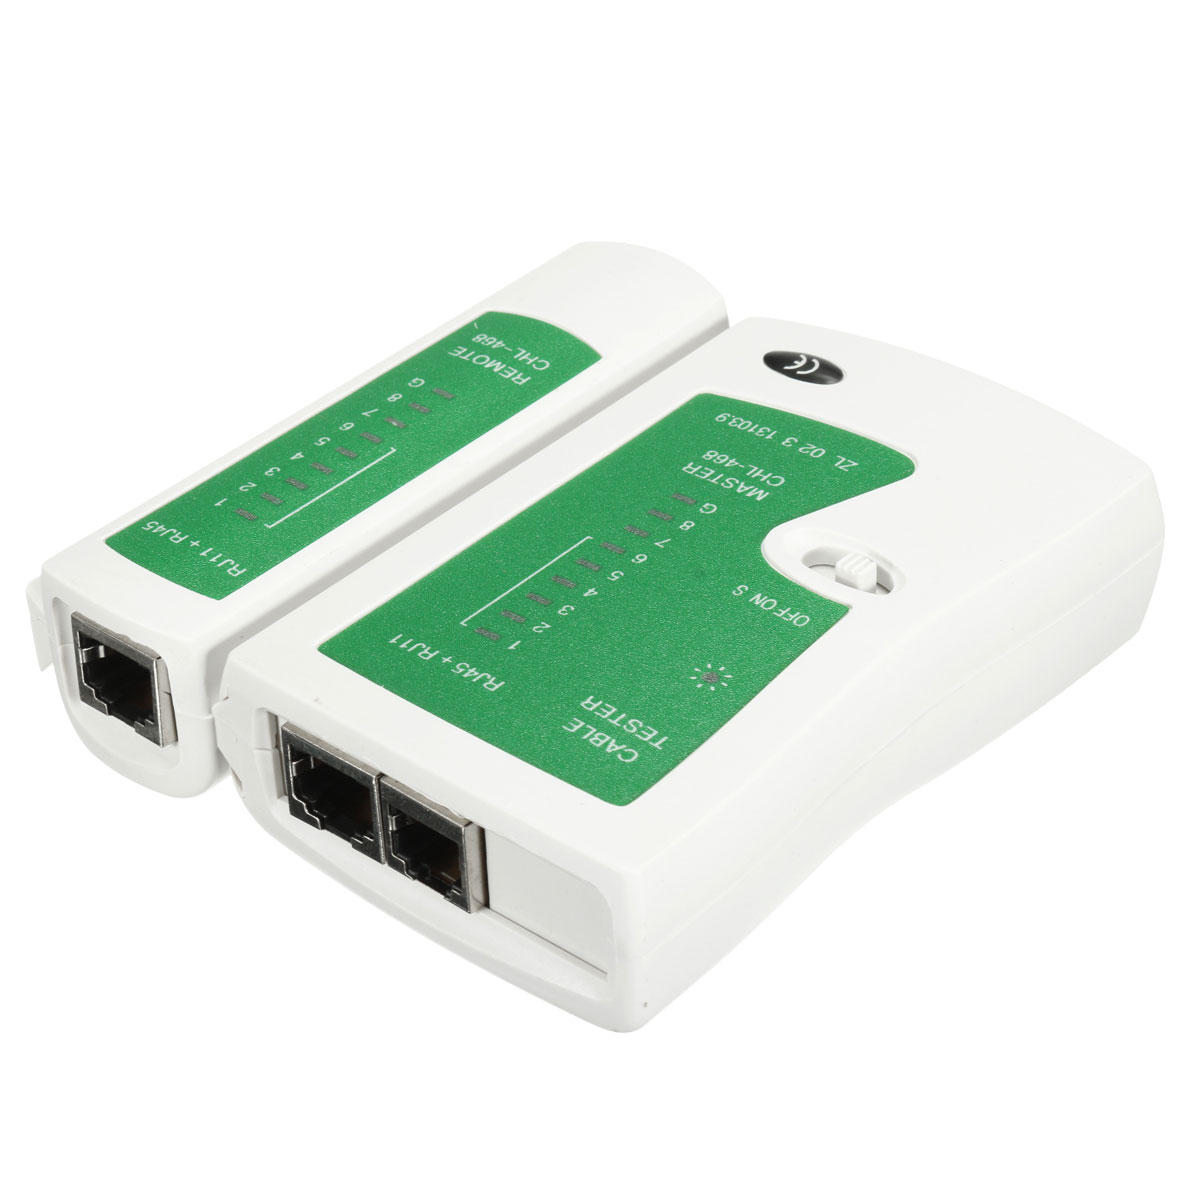 hight resolution of network cable tester for cat5 rj45 rj11 rj12 ethernet lan pc wire testing tool